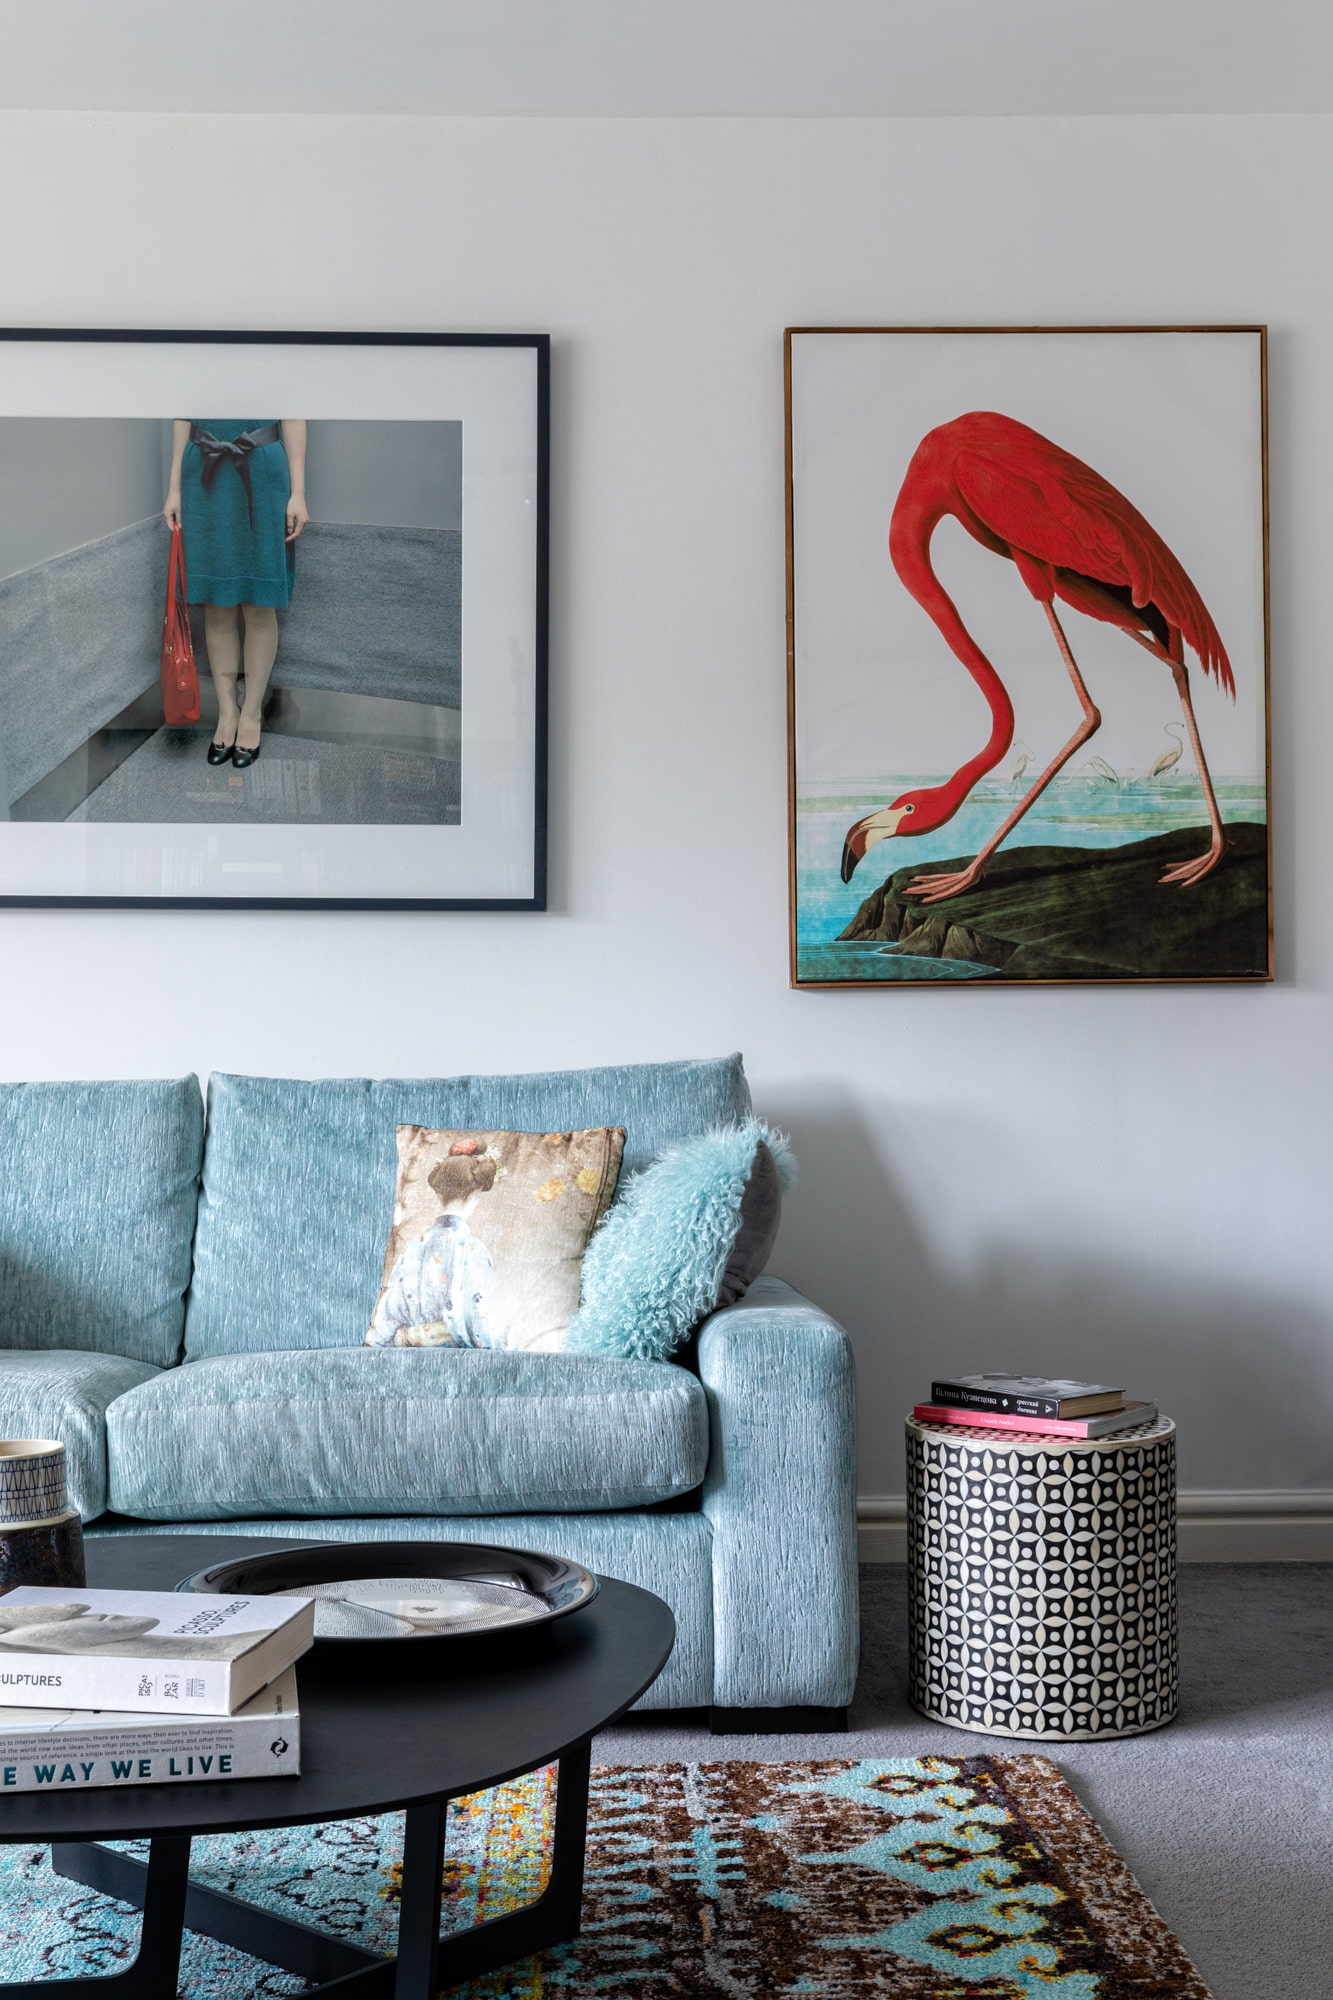 Interior design photography: a detail shot of a living room with light blue velvet sofa, fluffy pillow, a poster of Japanese girl in a lift; on the left side of the poster is an art with a red flamingo